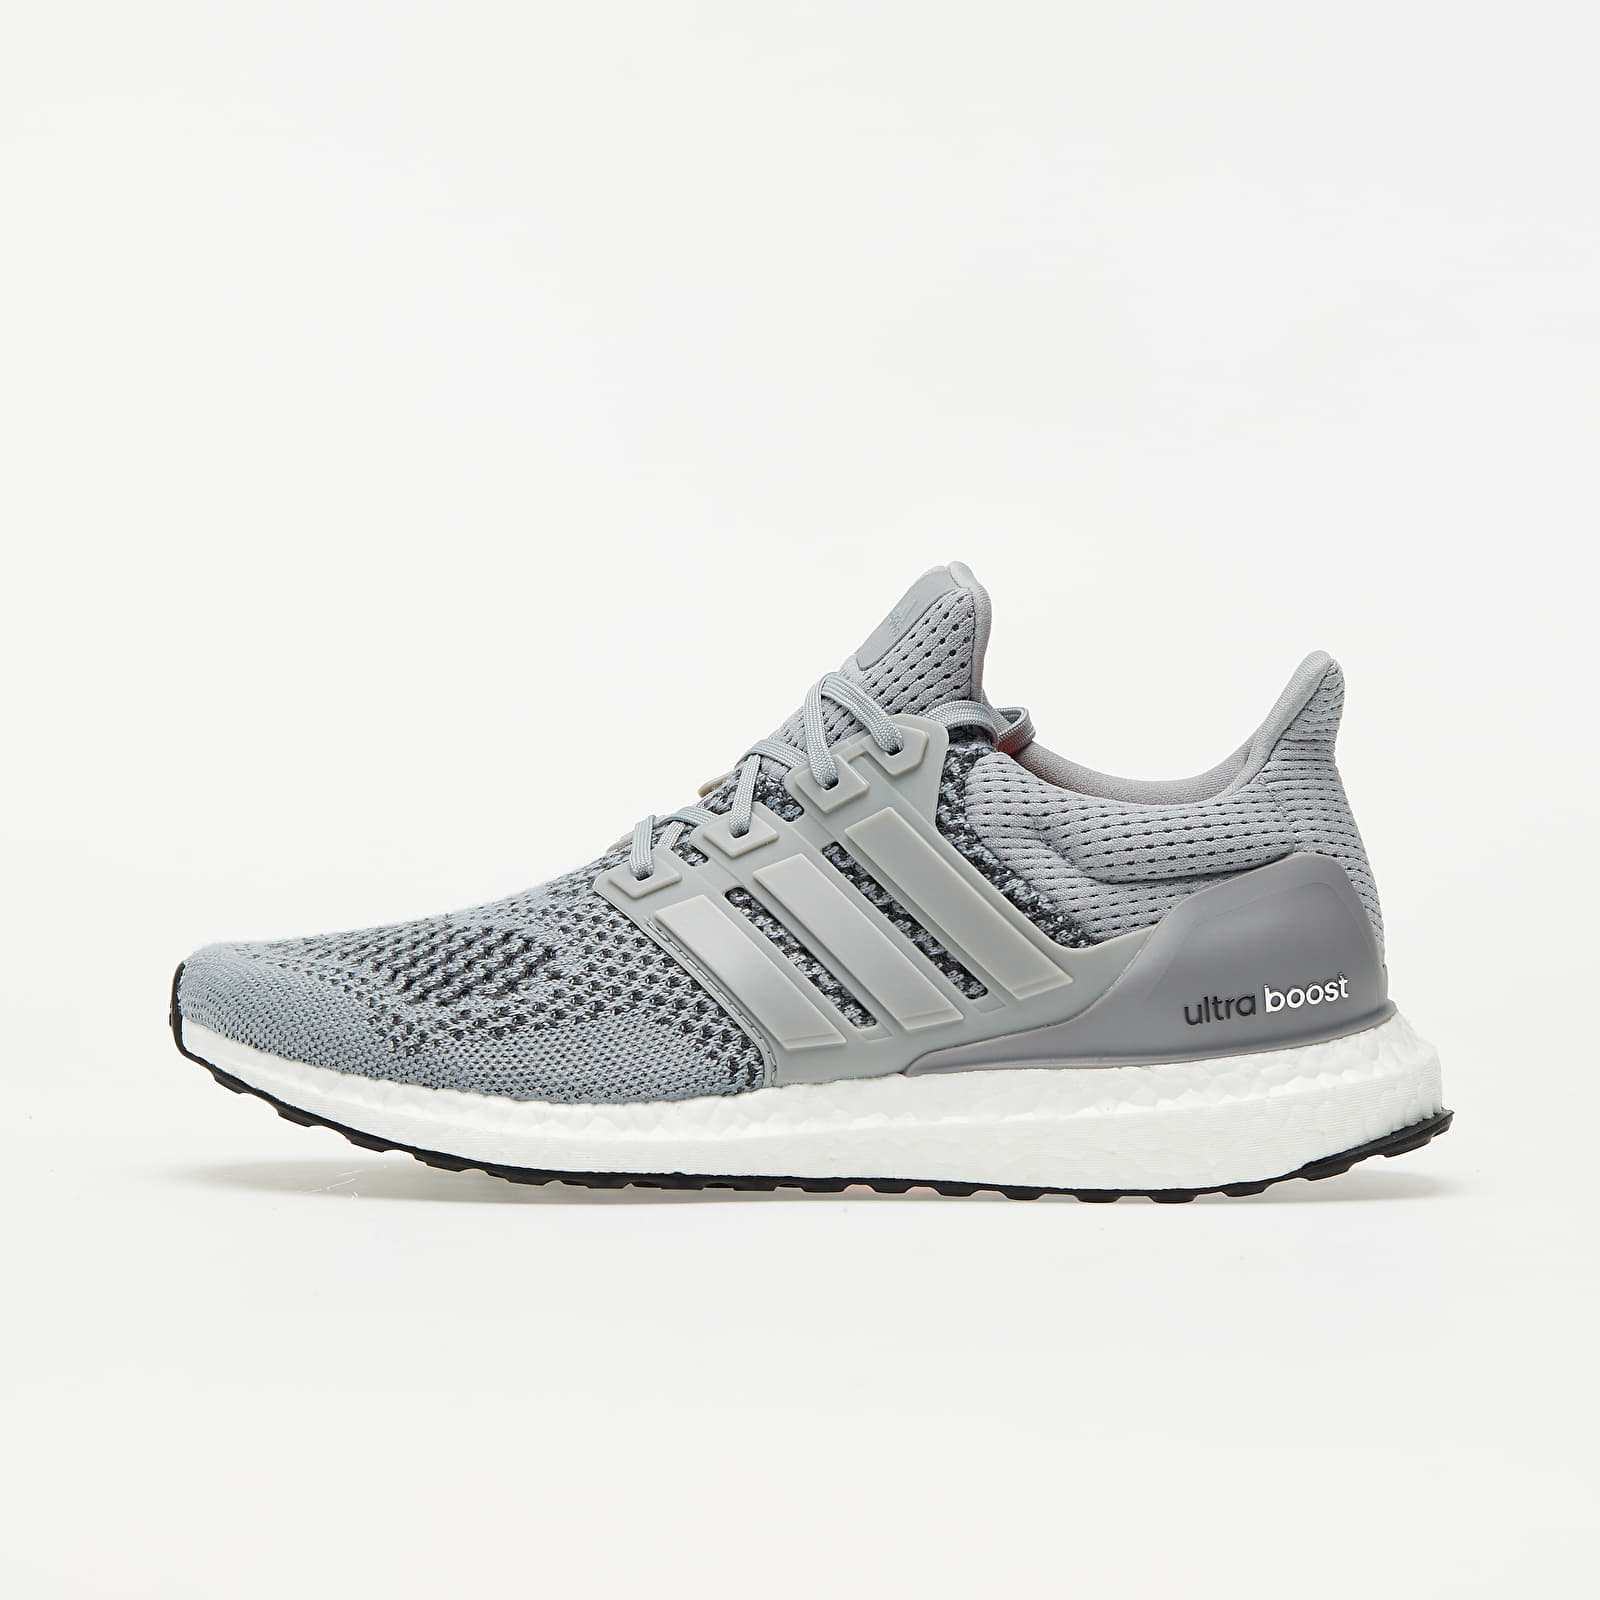 Chaussures et baskets homme adidas UltraBOOST M Grey/ Silver Metalic/ Solar Red